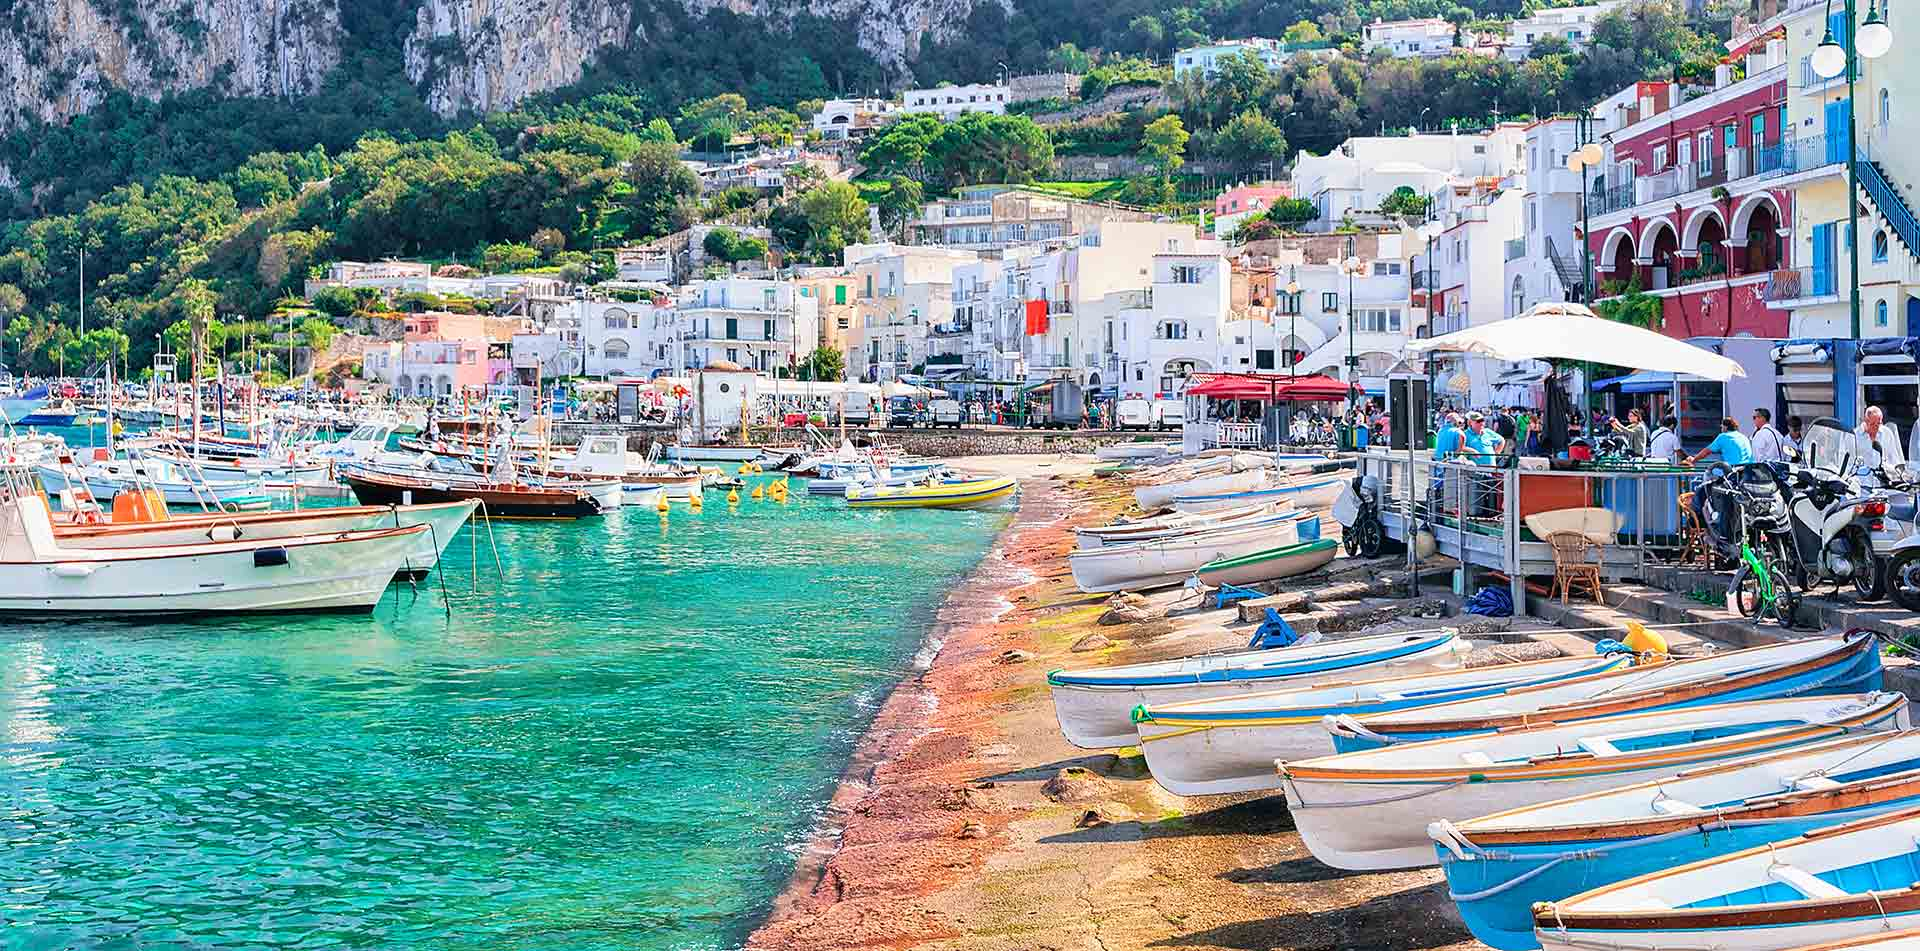 Europe Italy Amalfi Coast Capri marina grande embankment with boats on shore with blue water - luxury vacation destinations